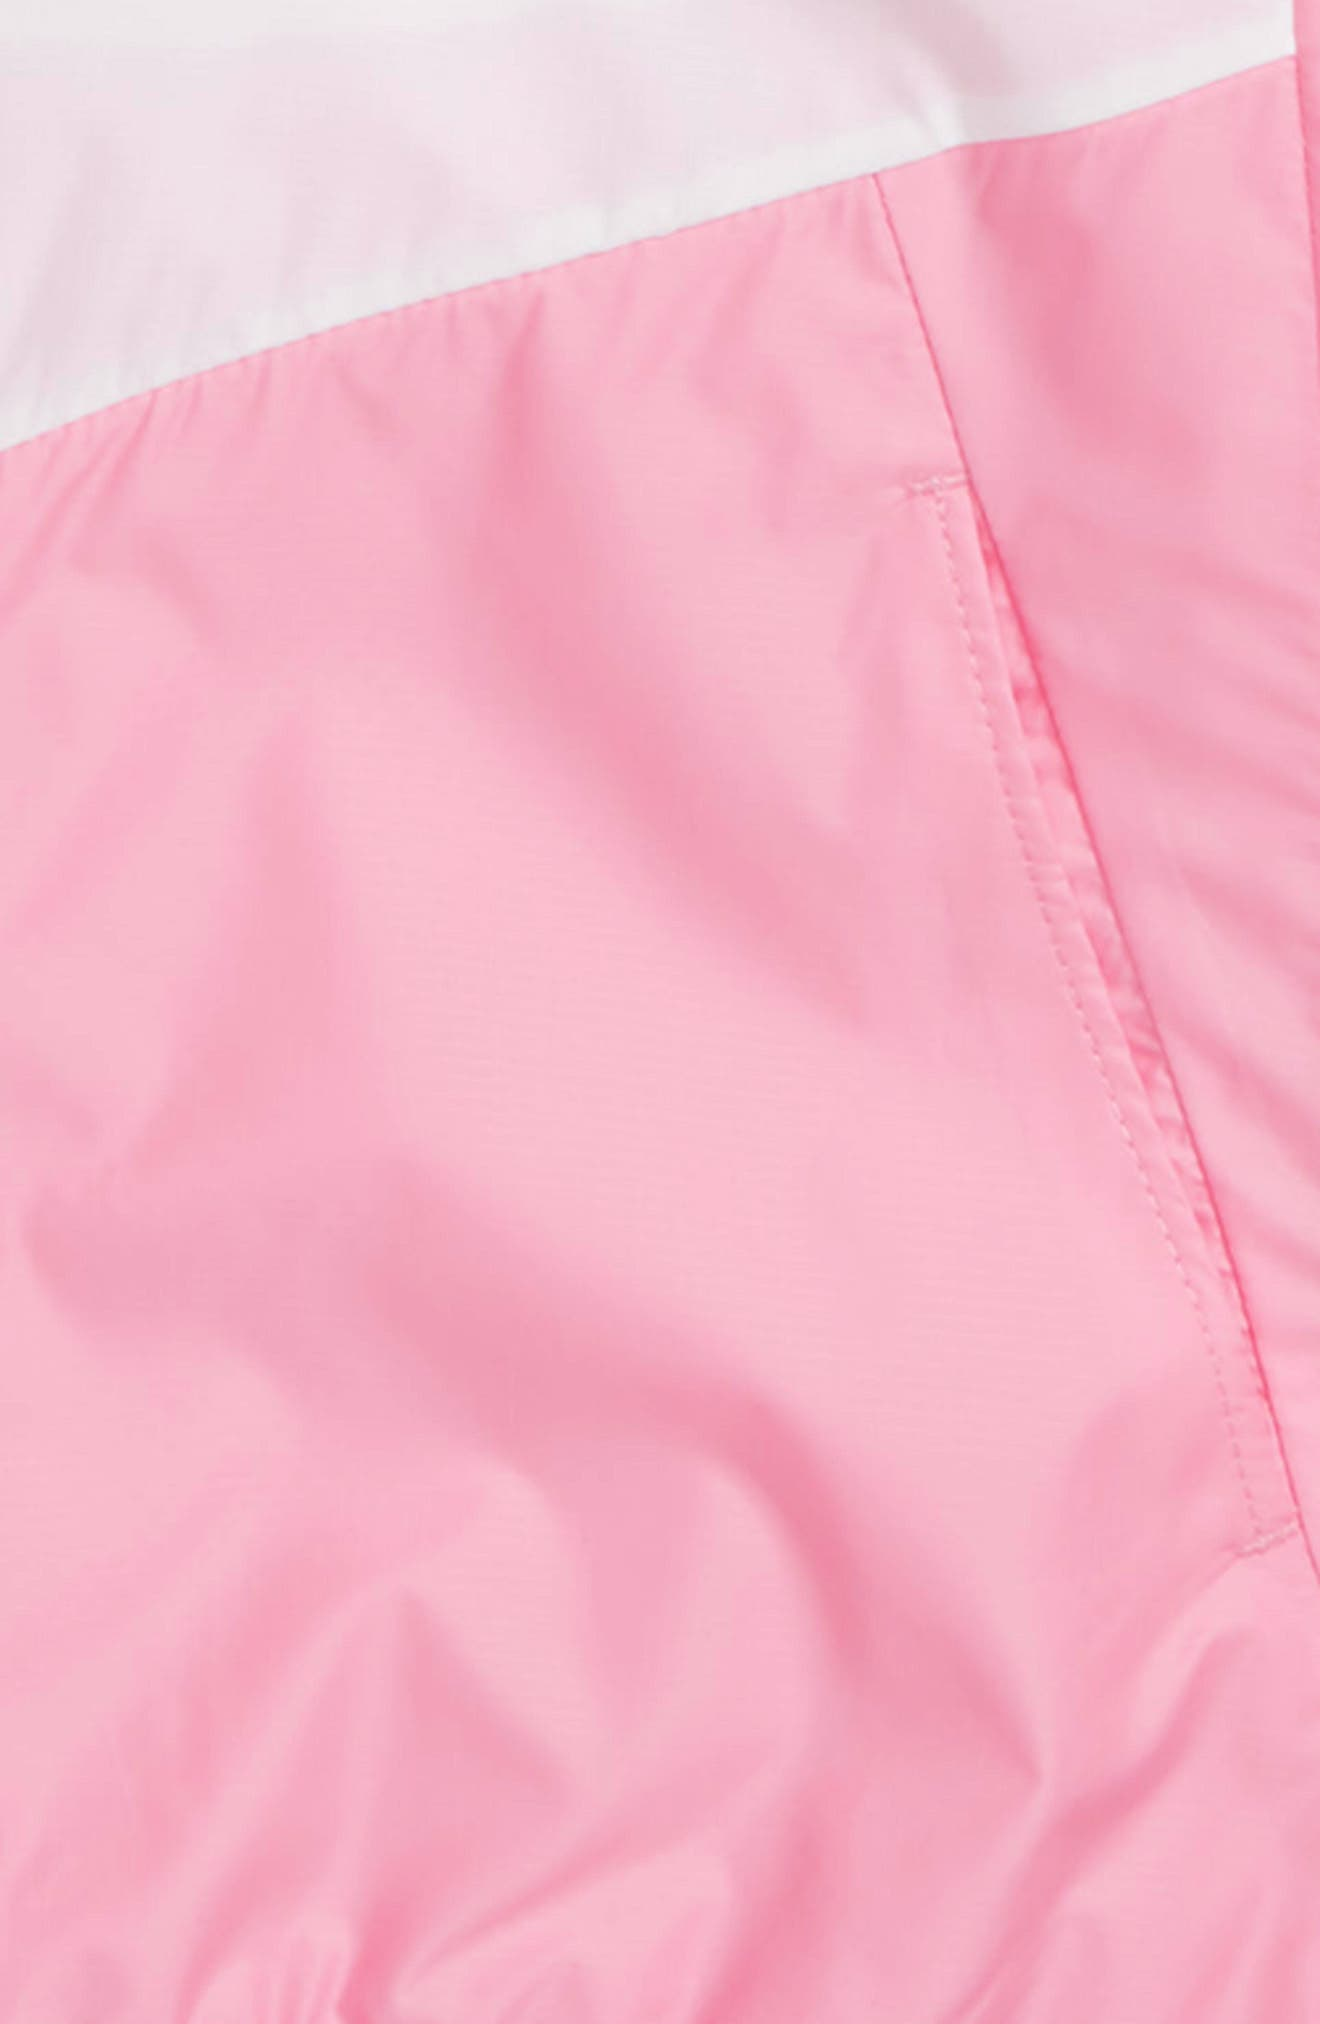 Sportswear Windrunner Jacket,                             Alternate thumbnail 3, color,                             White/ Pink/ Pink